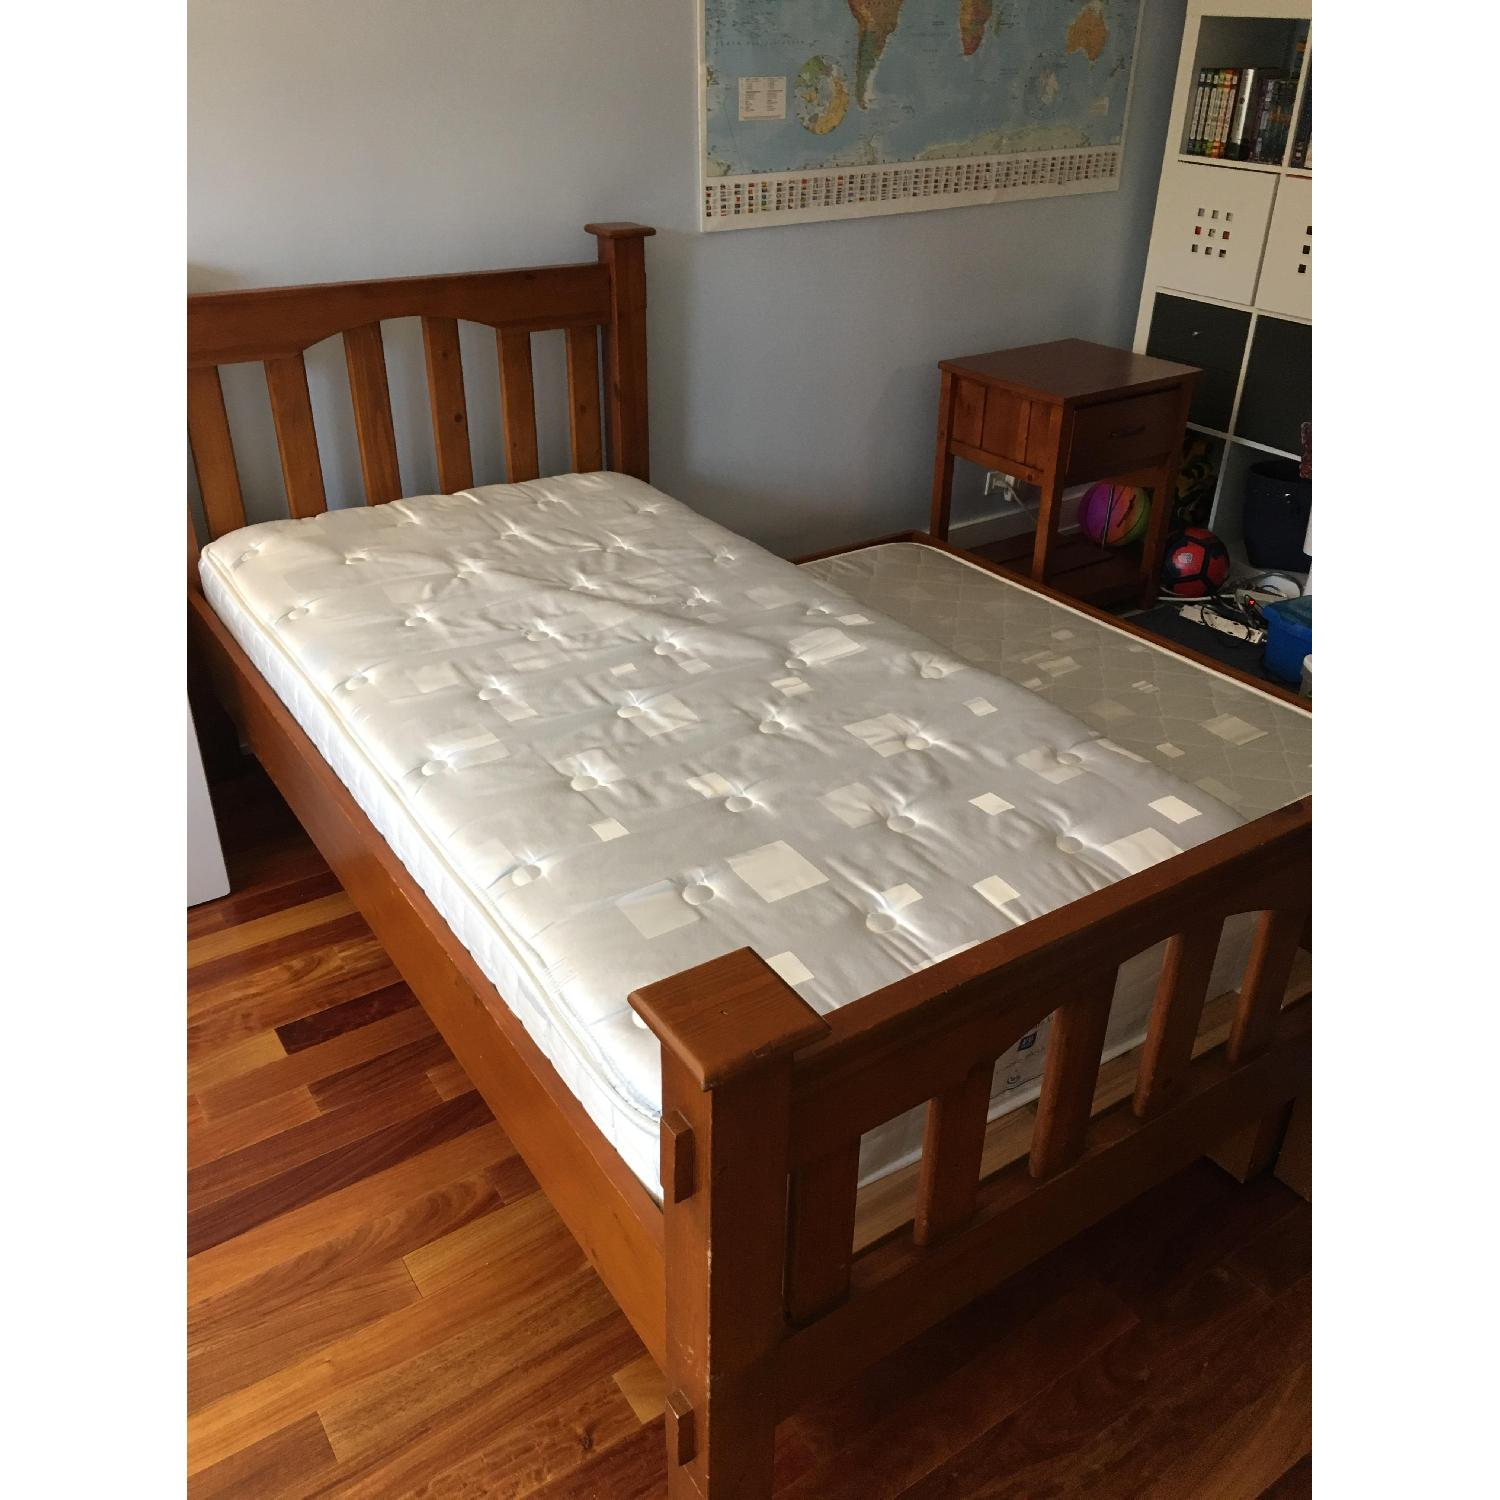 Pottery Barn Kendall Twin Bed w/ Trundle - image-2